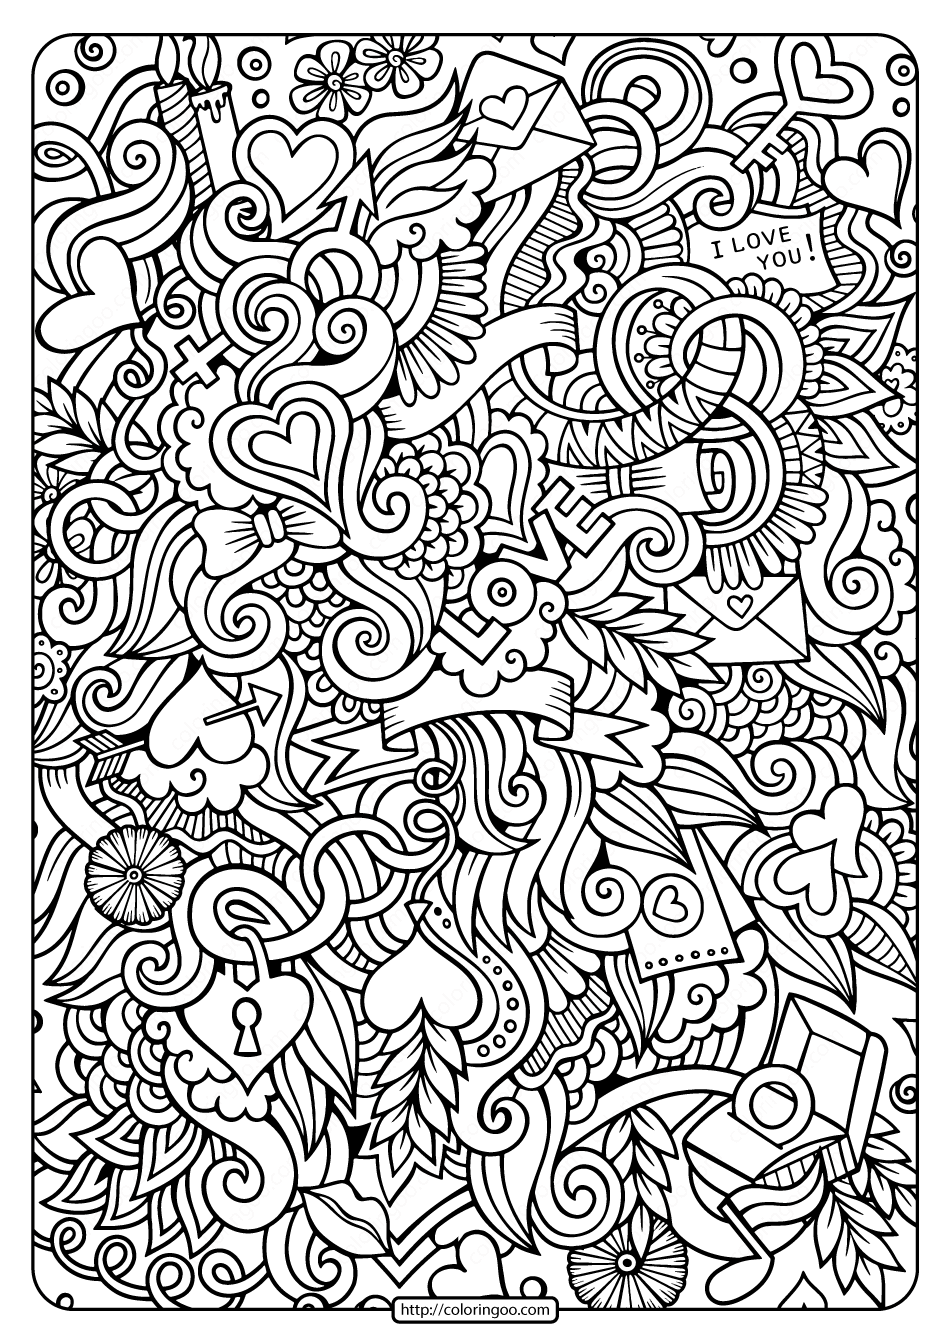 coloring images free printable love doodle pdf coloring page images coloring